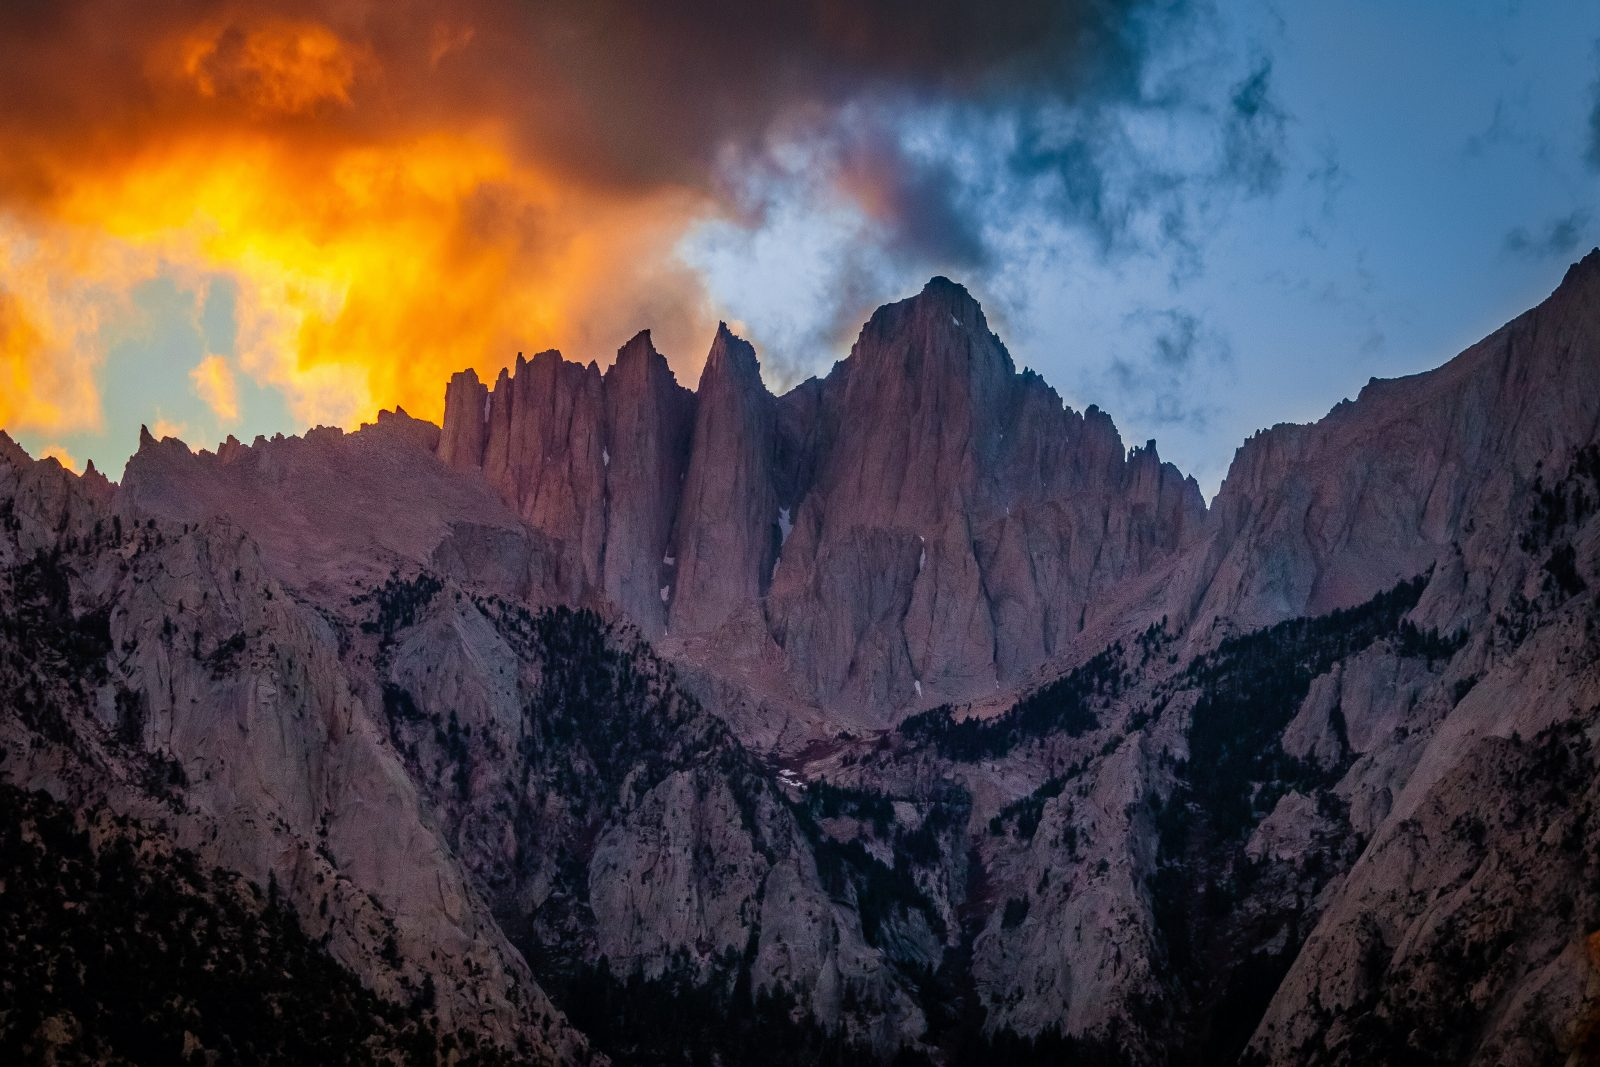 Summer Cloud Over The Spires of Mount Whitney